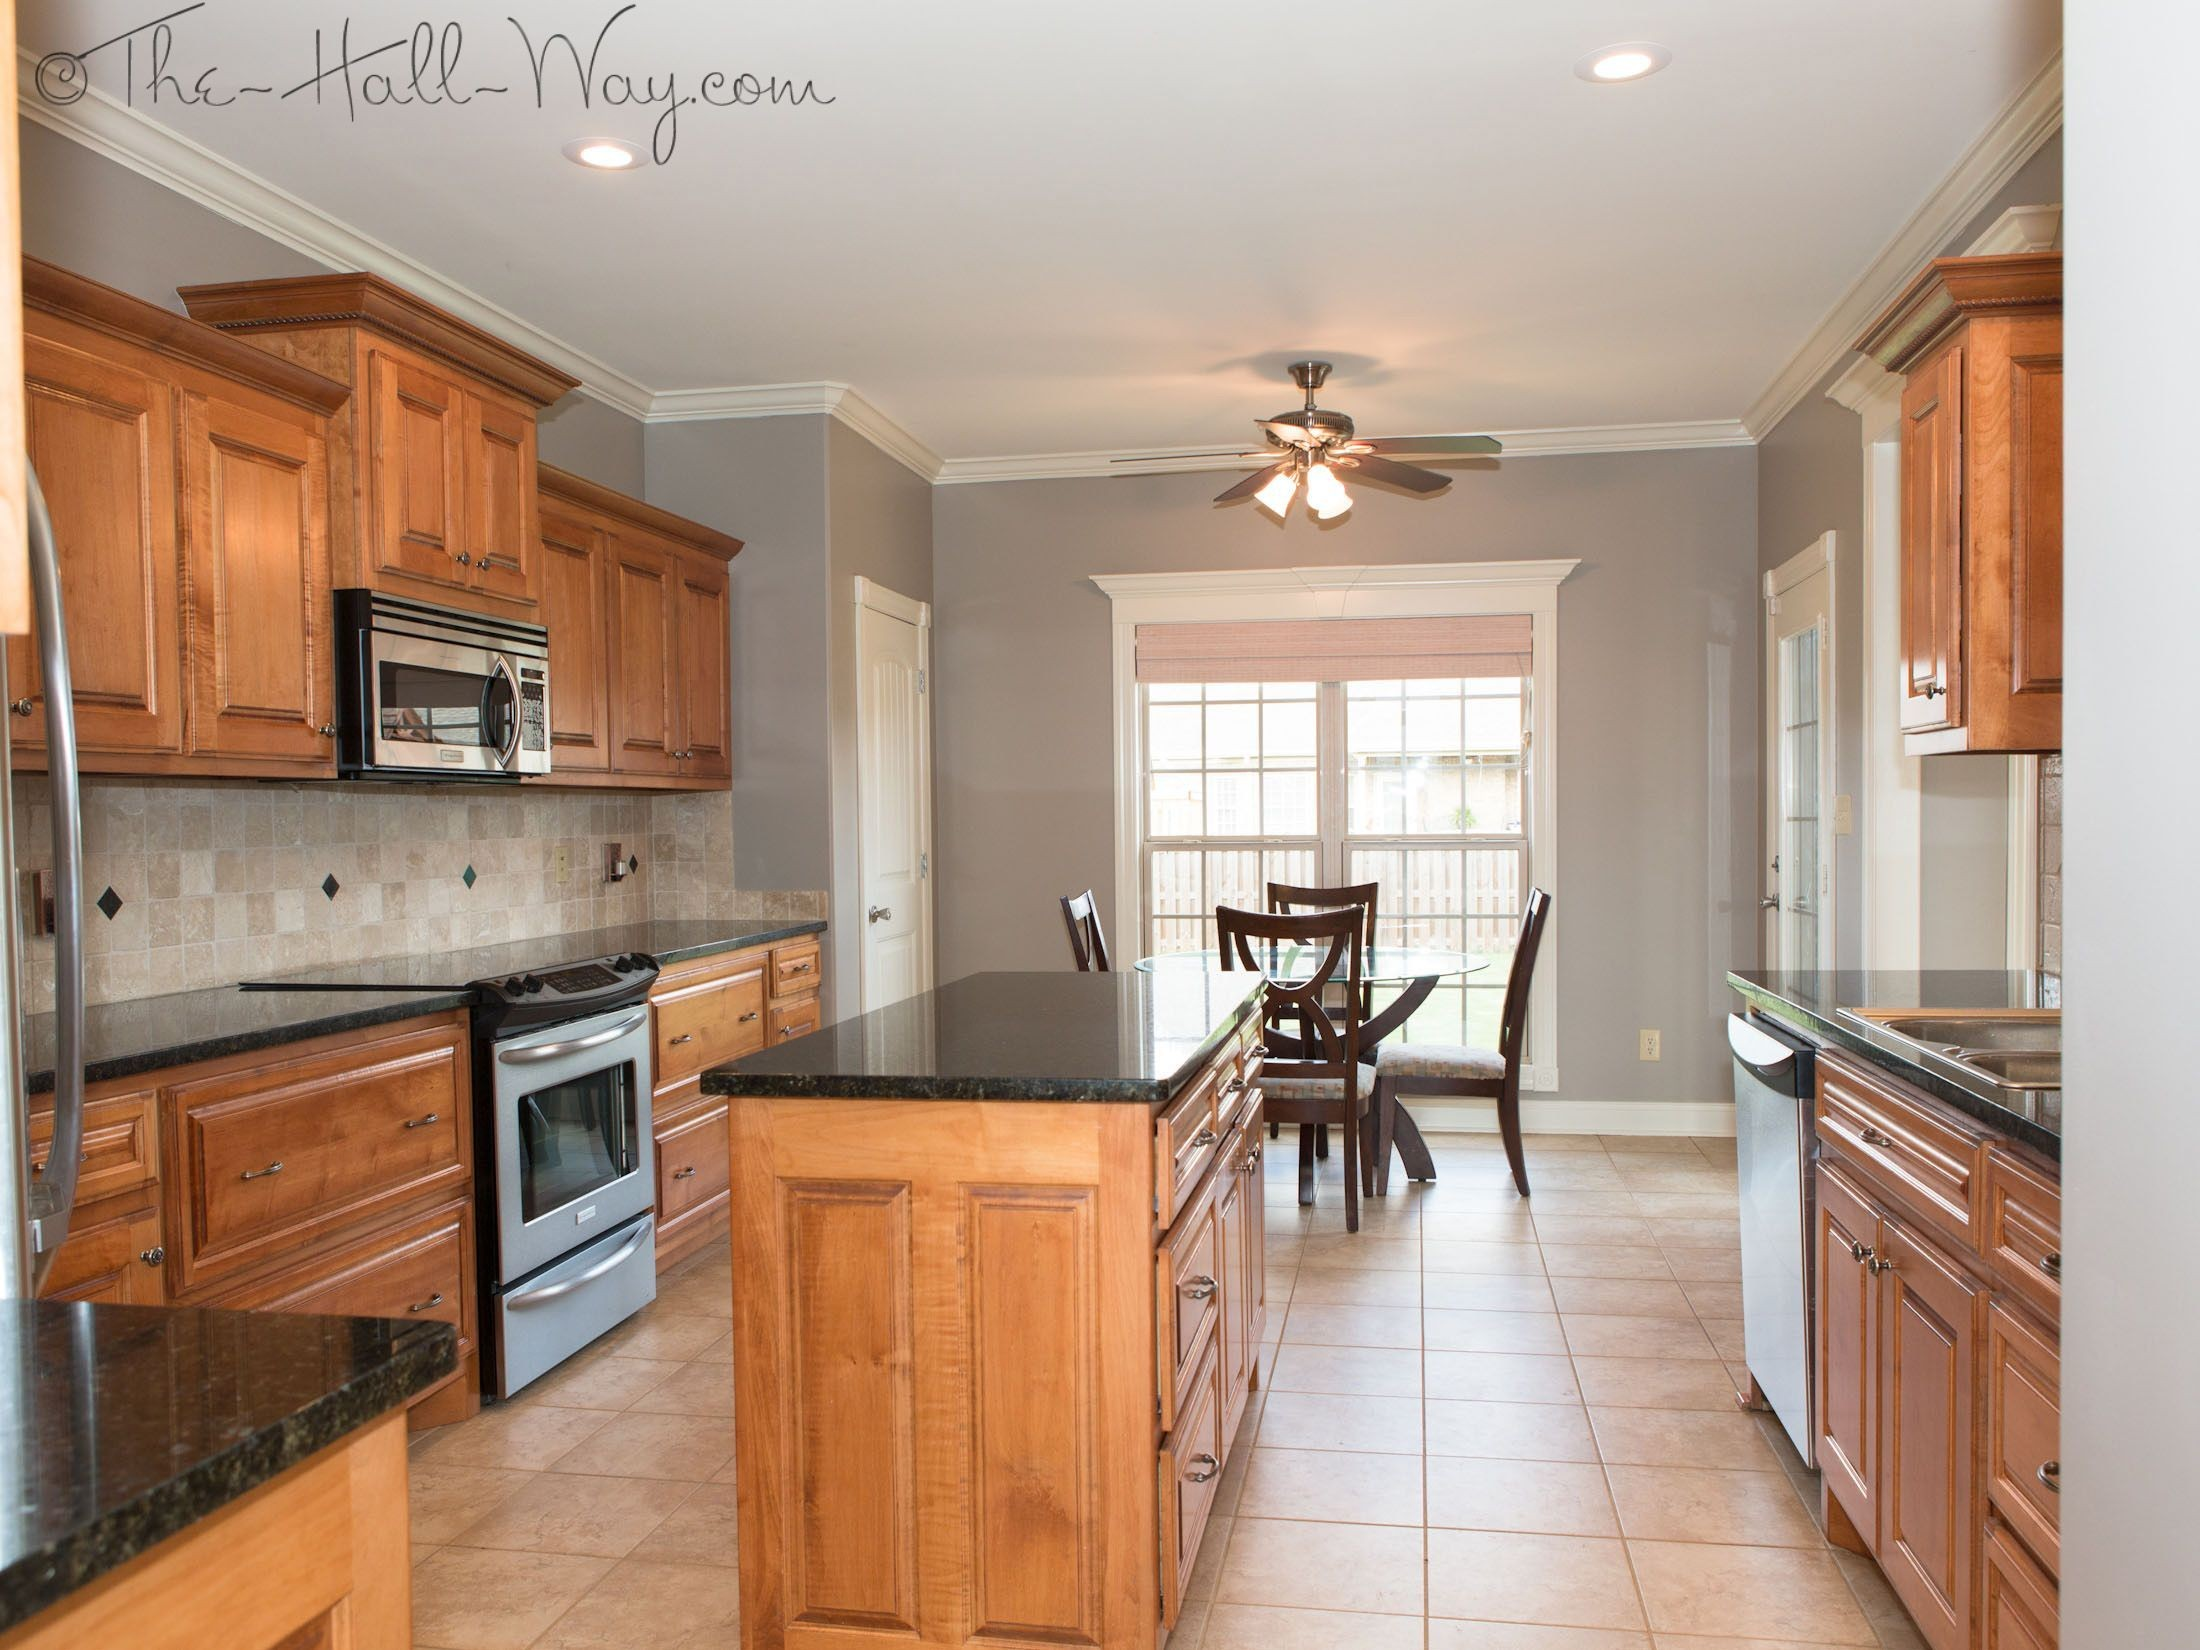 Countertop Colors That Go With Honey Oak Cabinets How ...